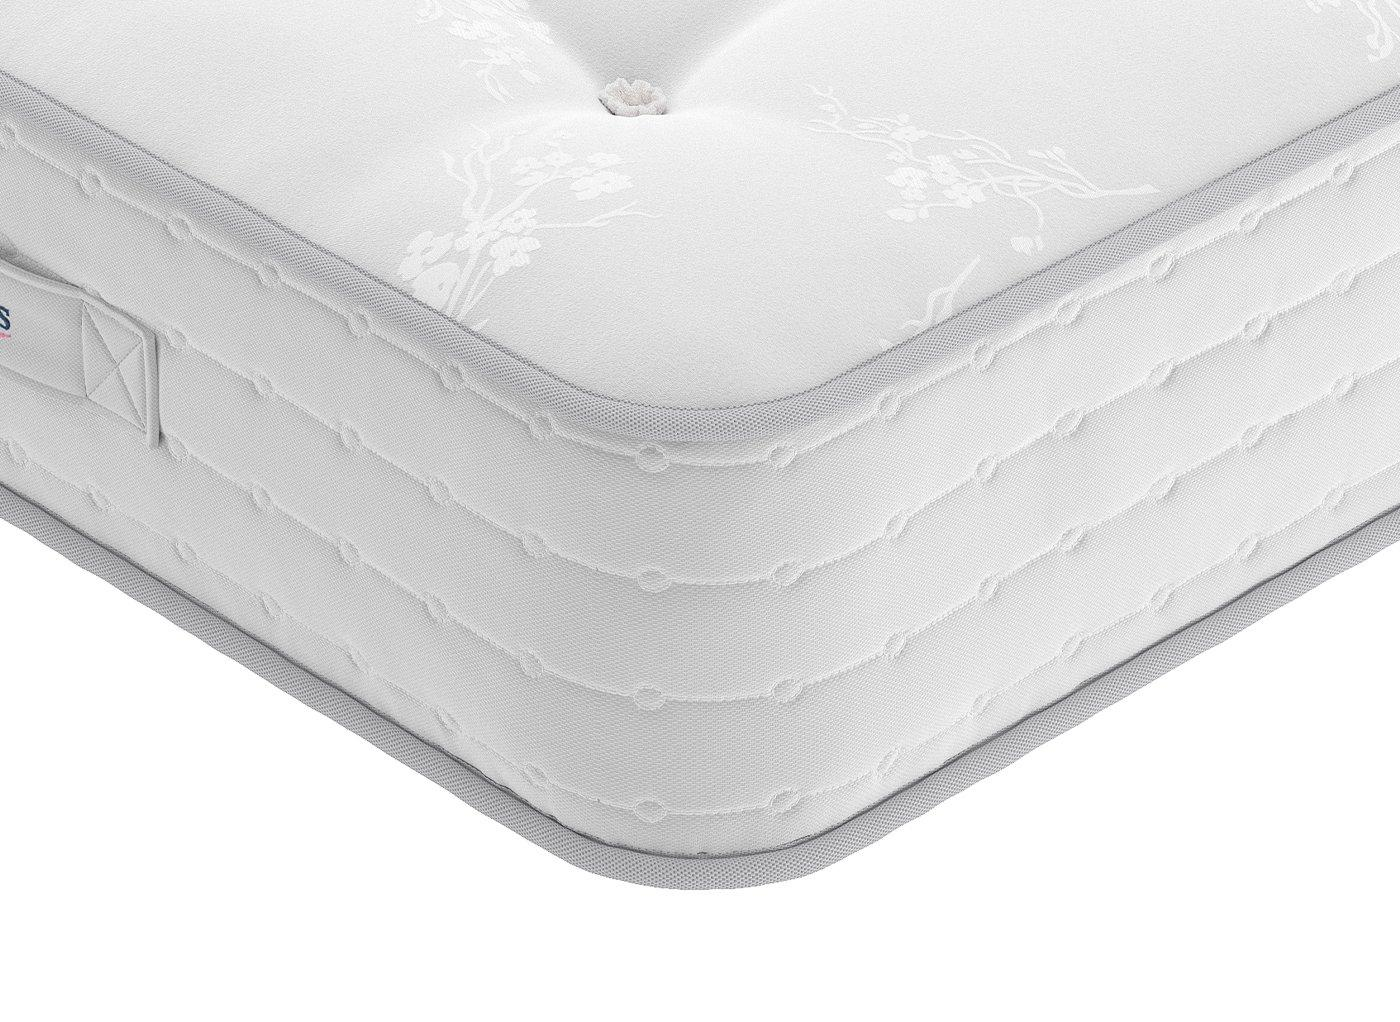 Maitland 1000 Pocket Sprung Mattress - Firm 4'0 Small double